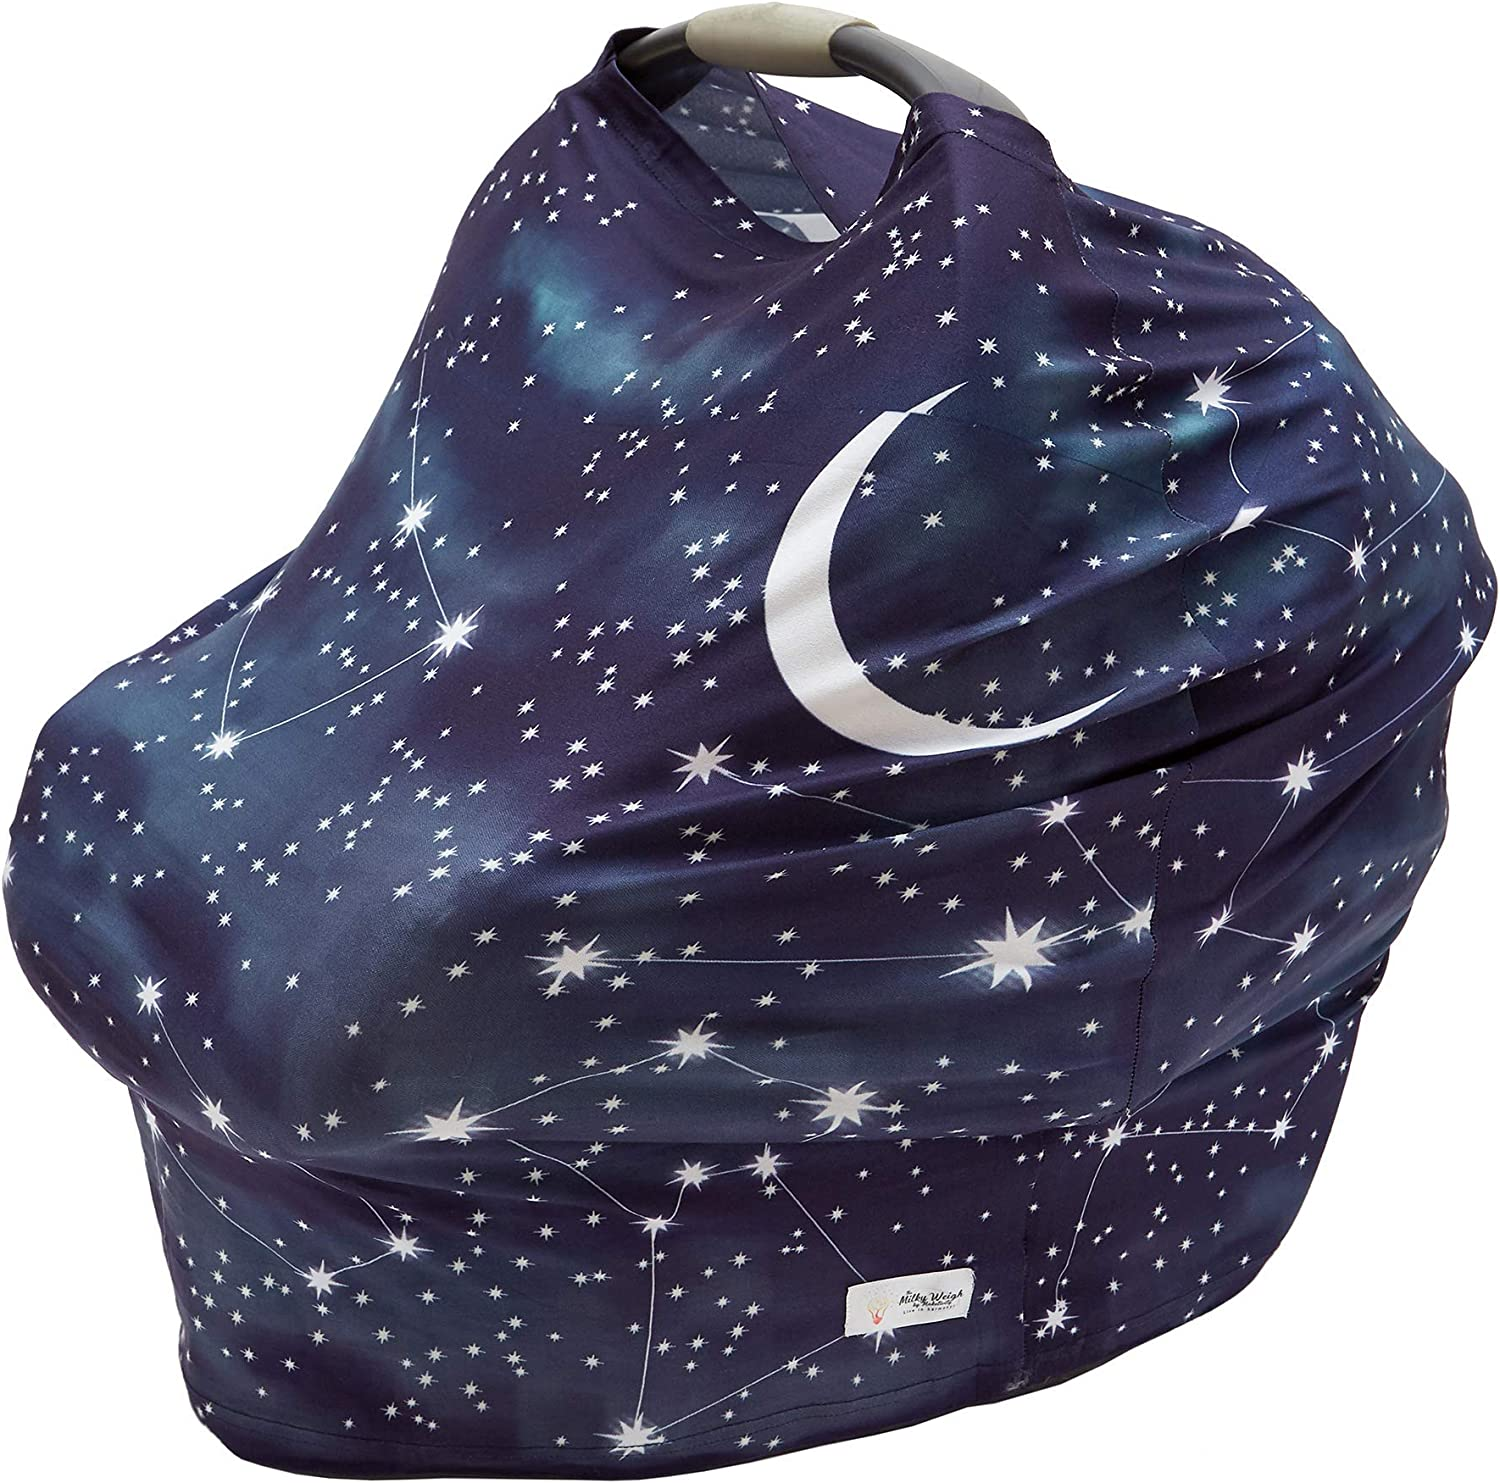 Starry Night Nursing Cover - Carseat Canopy - Organic Baby/Infant Breastfeeding Shawl/Blanket/Scarf/Wrap/Poncho - Portable Feeding Cloth for babies - Multifunctional Car seat/Stroller/Cart Covers